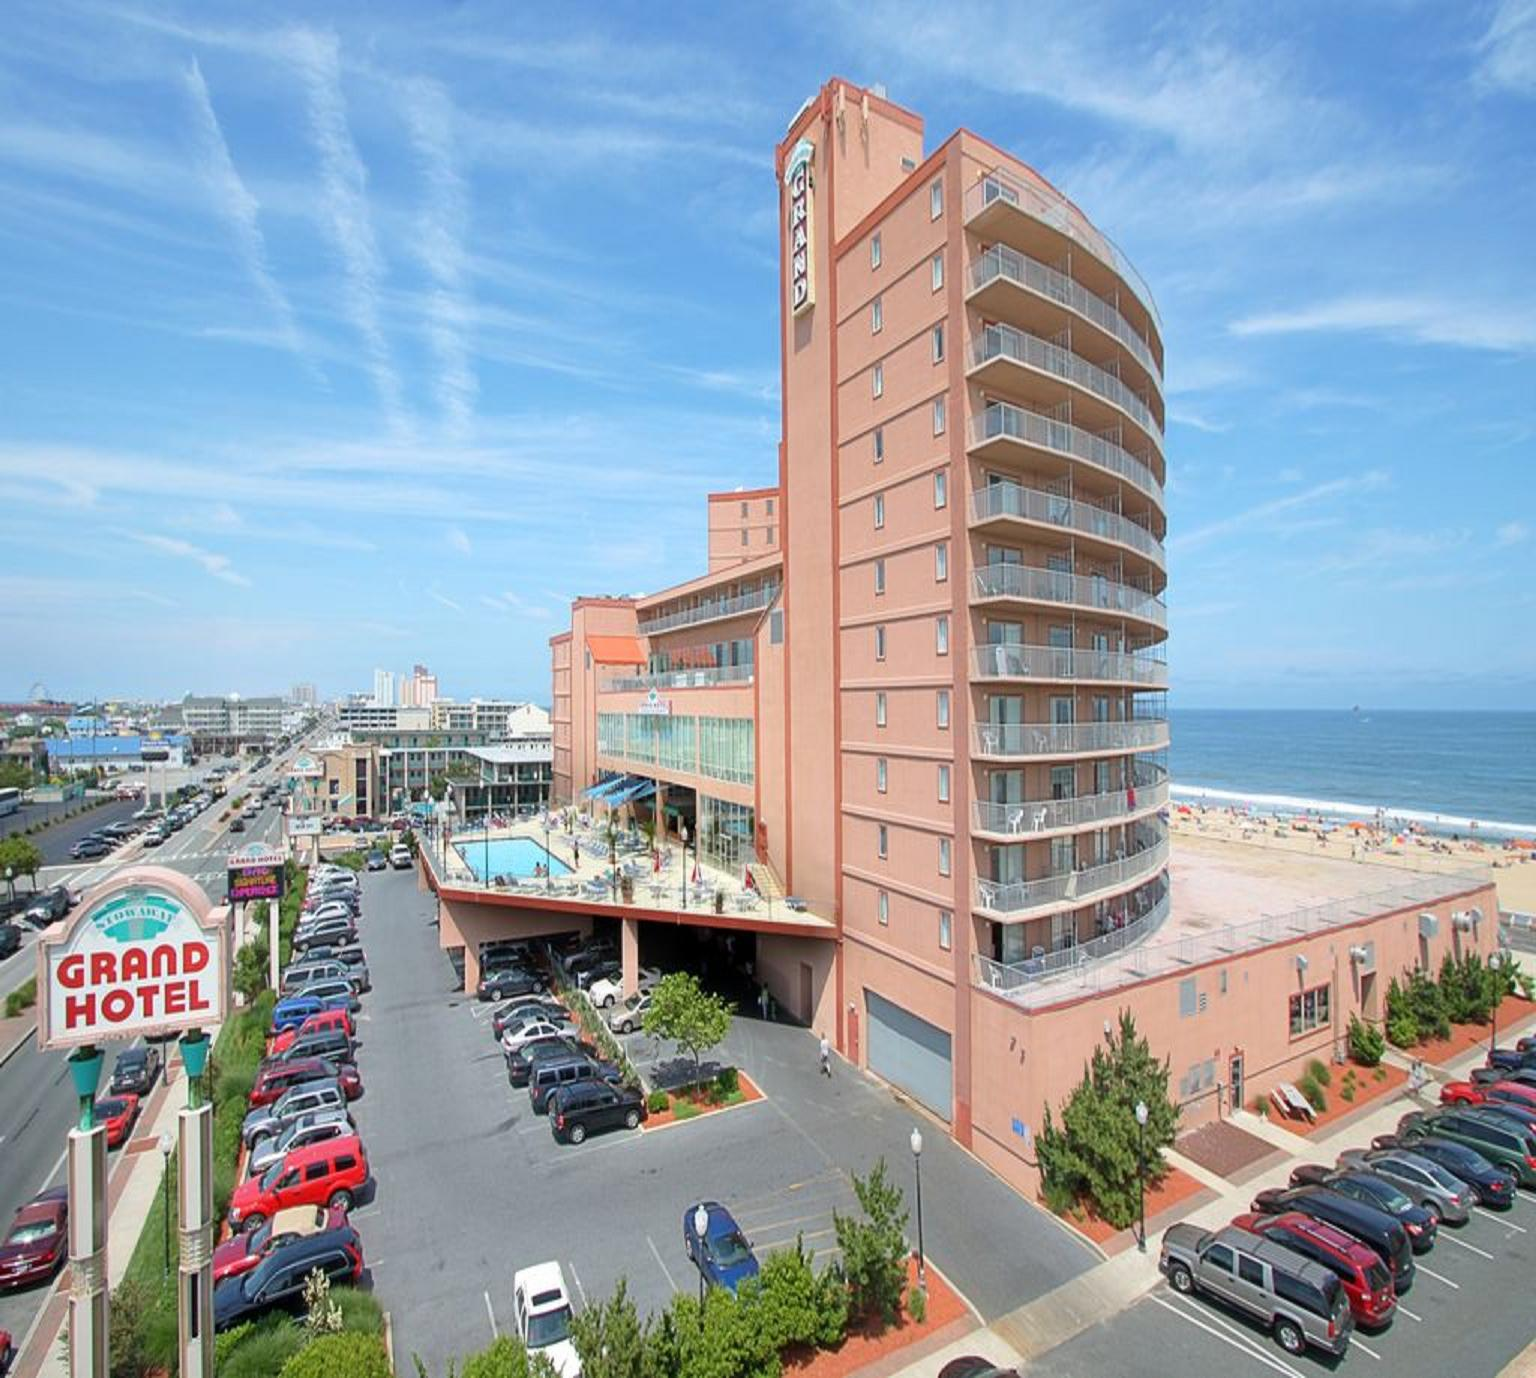 Grand Hotel And Spa 2100 Baltimore Avenue Ocean City Md 21842